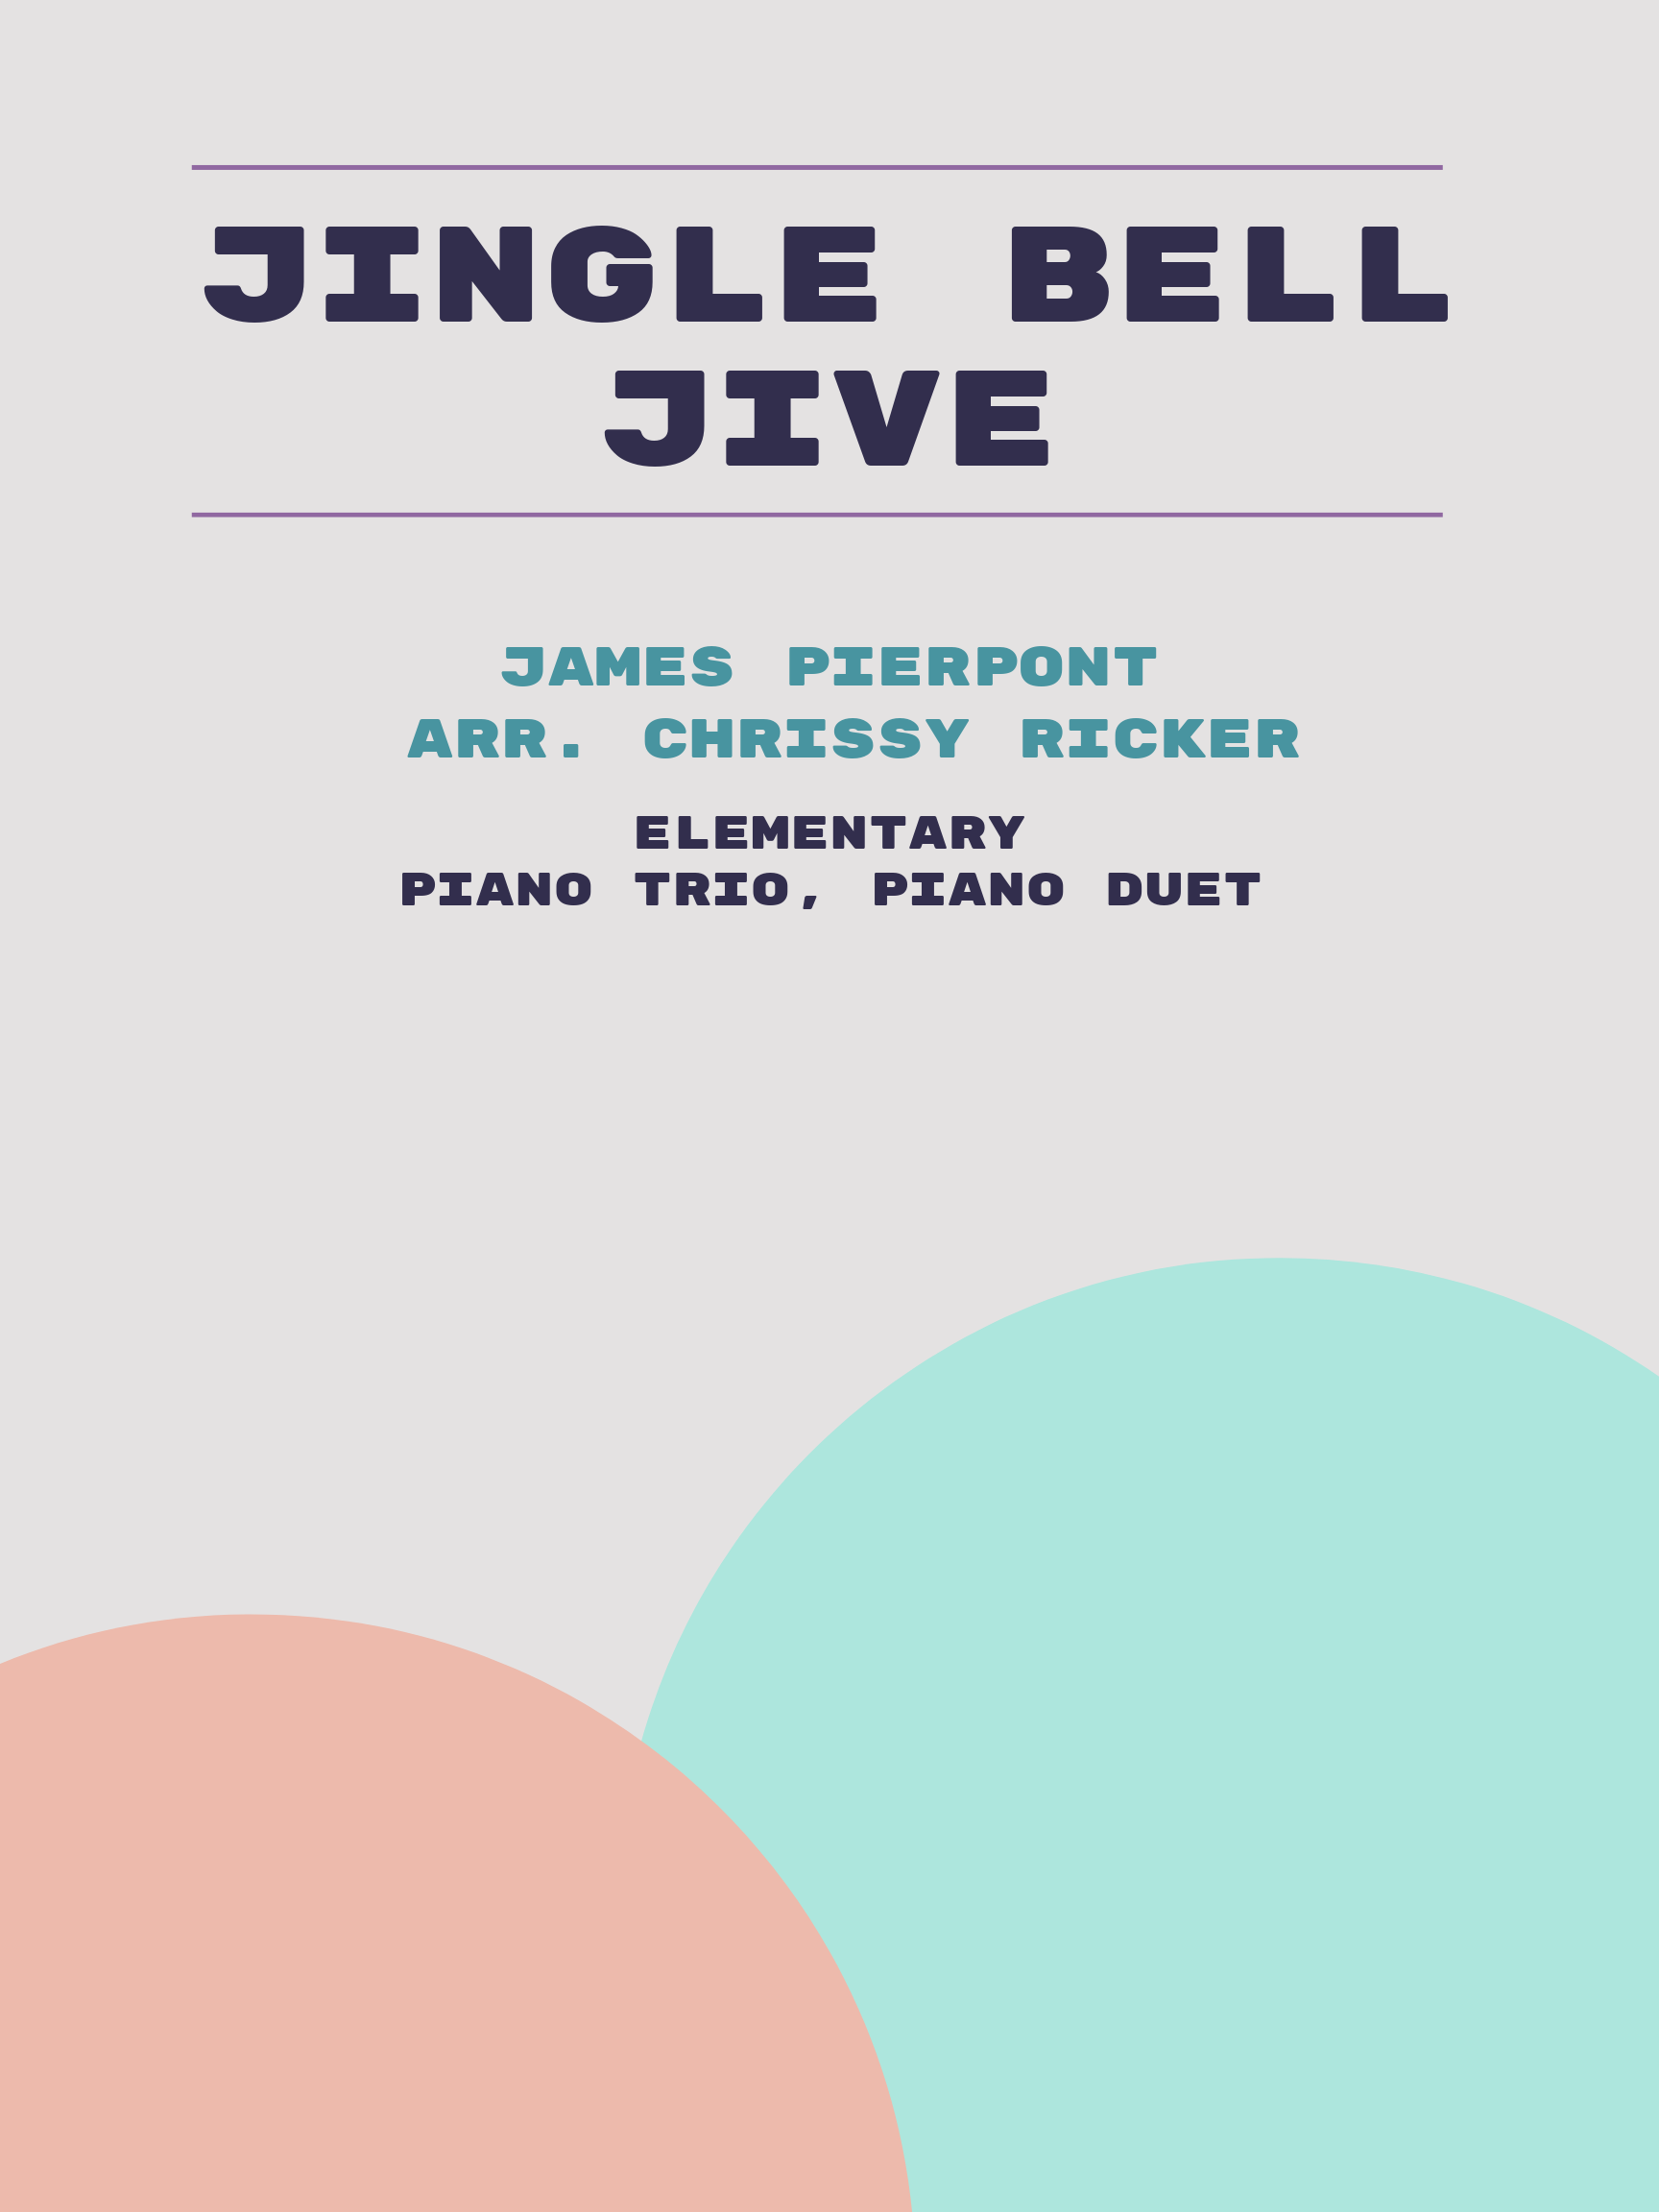 Jingle Bell Jive by James Pierpont